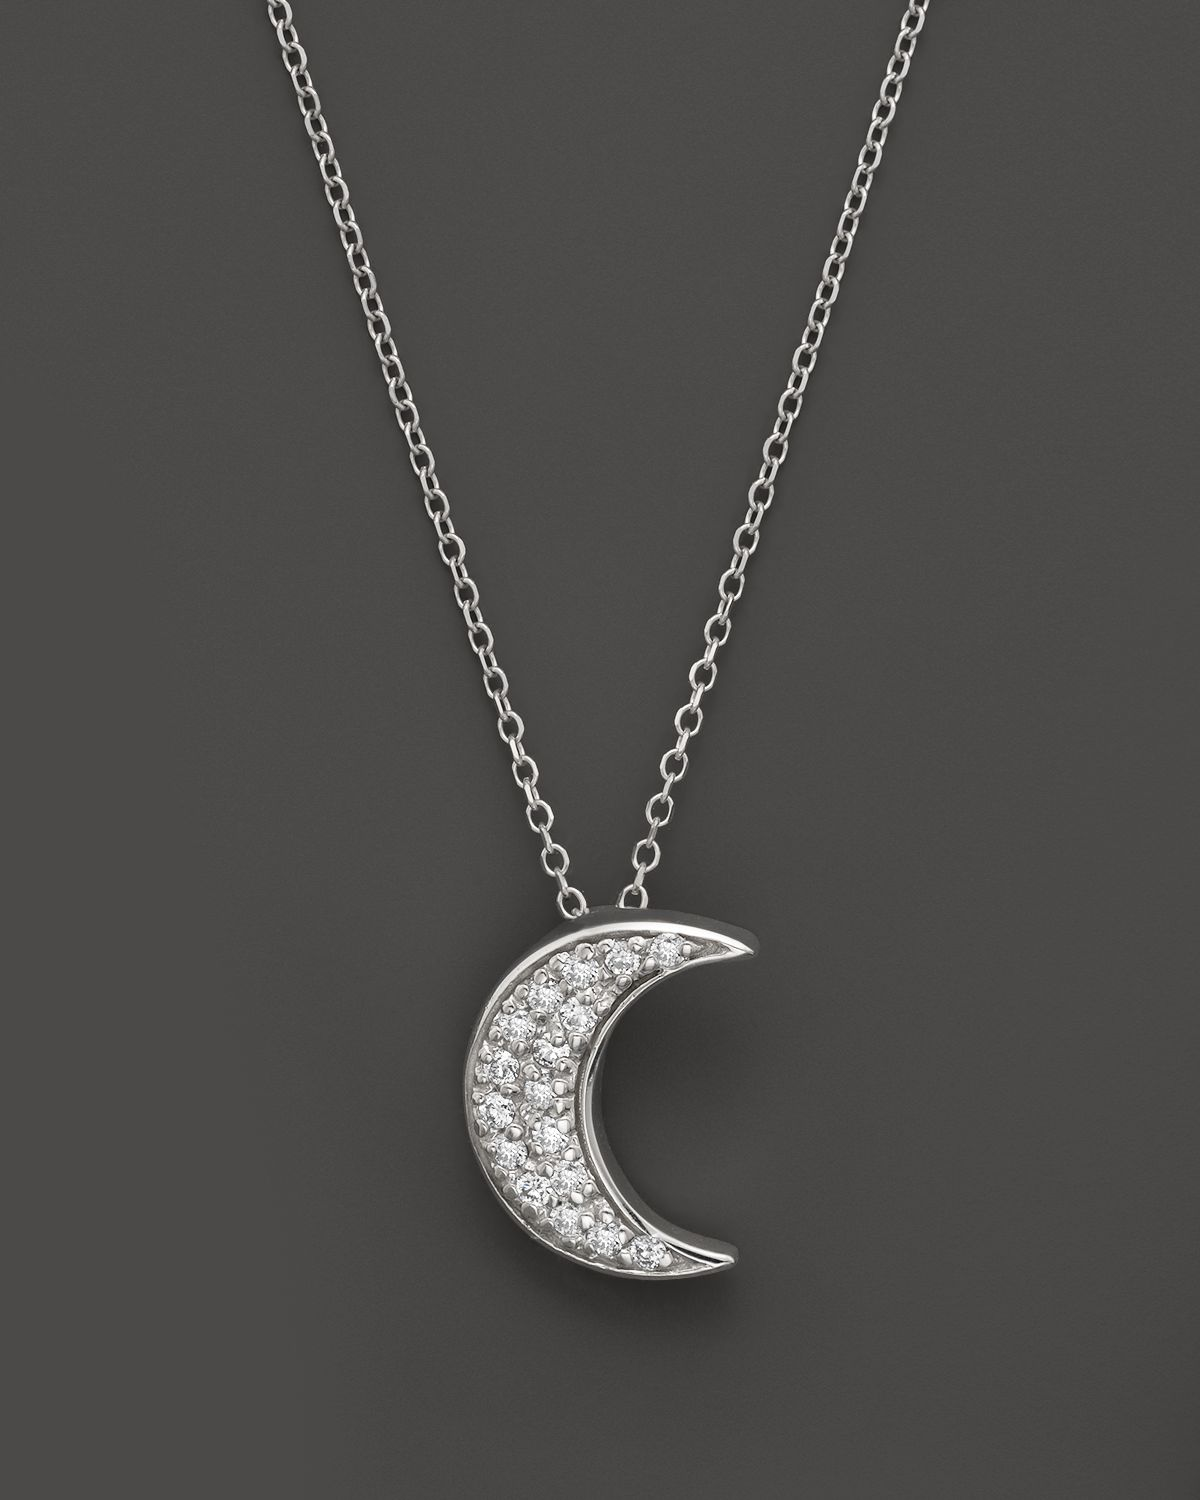 lrg crescent sscp moon peter astral silver shop crescentmoon aspects stone jewellery g pendant sterling by pendants